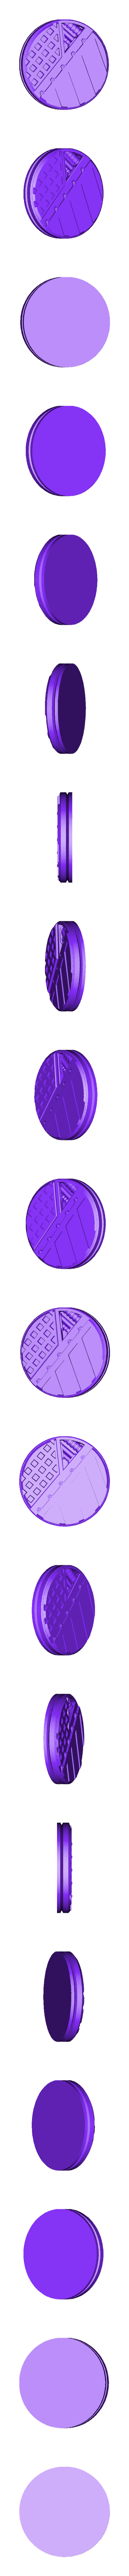 """Ship_E_-_1_inch.stl Download free STL file 1"""" & 2' Round Bases - The Ignis Quadrant • 3D printing template, ec3d"""